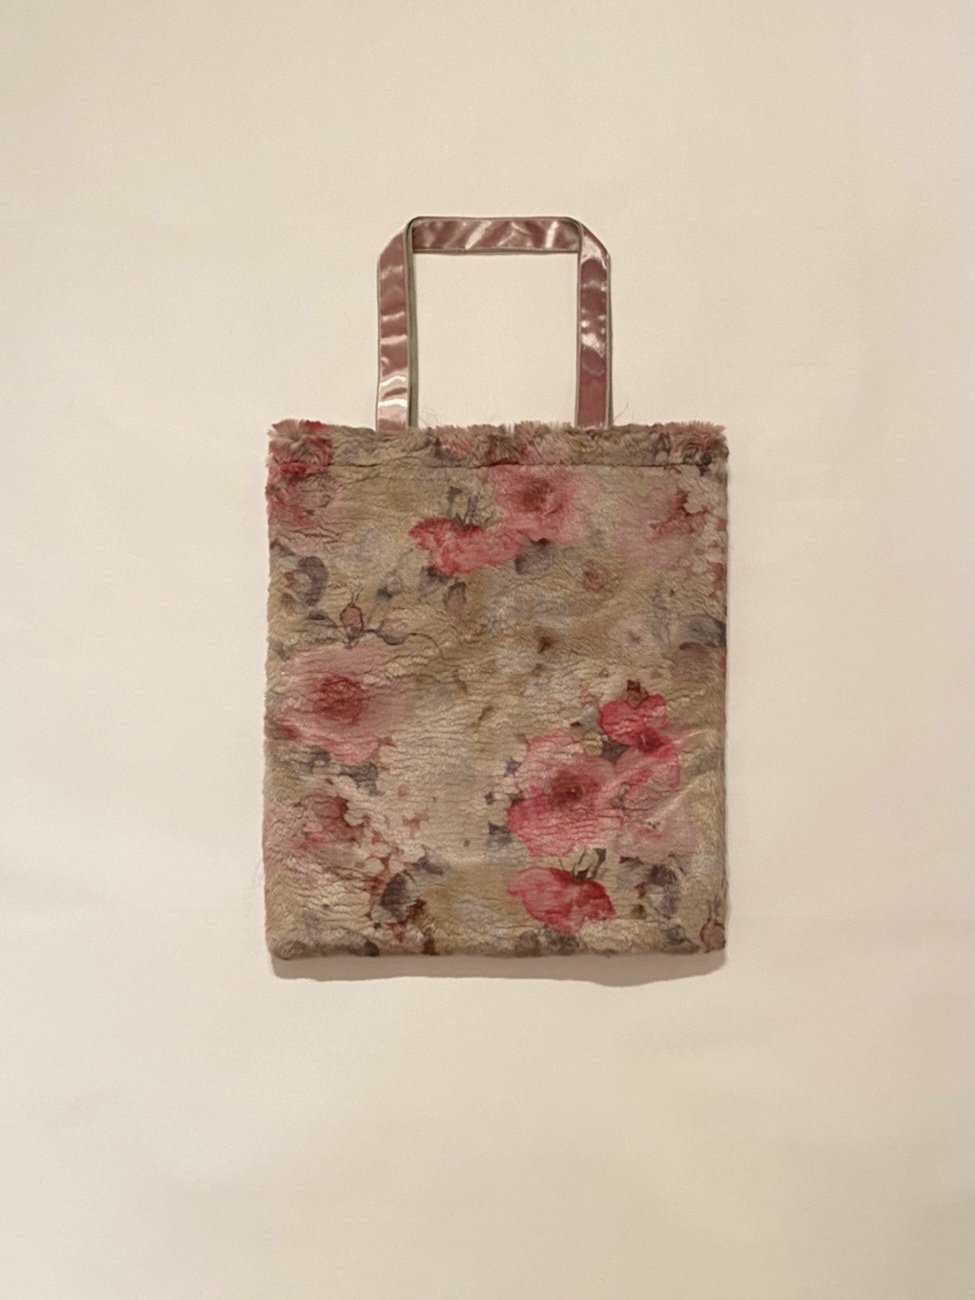 leur logette - <img class='new_mark_img1' src='https://img.shop-pro.jp/img/new/icons1.gif' style='border:none;display:inline;margin:0px;padding:0px;width:auto;' />Collage Bag 【Limited Edition】